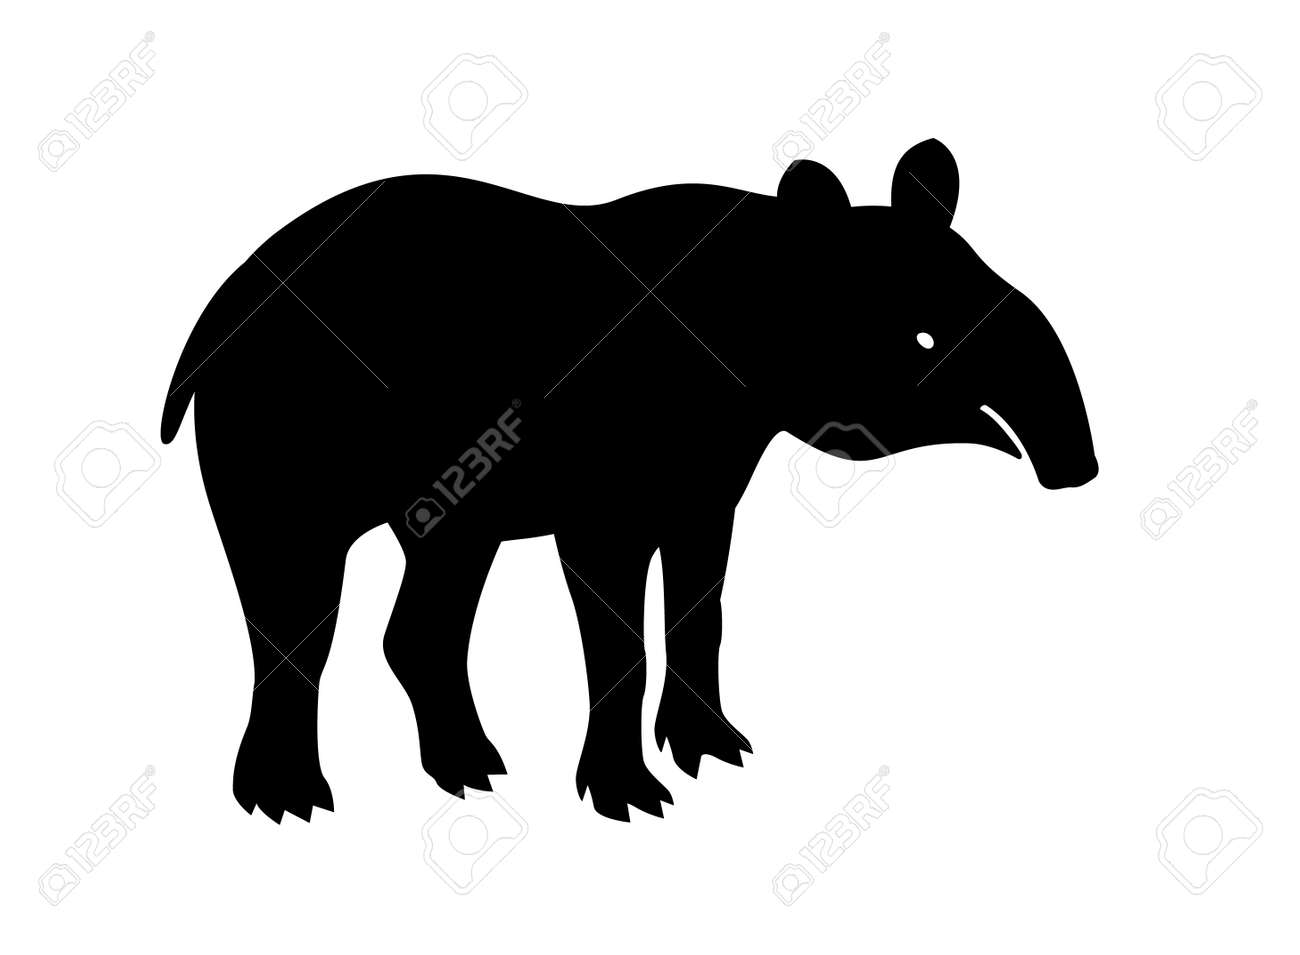 Tapir, animal, vector path for laser cutting, shadow black color, cute flat style. - 157901542